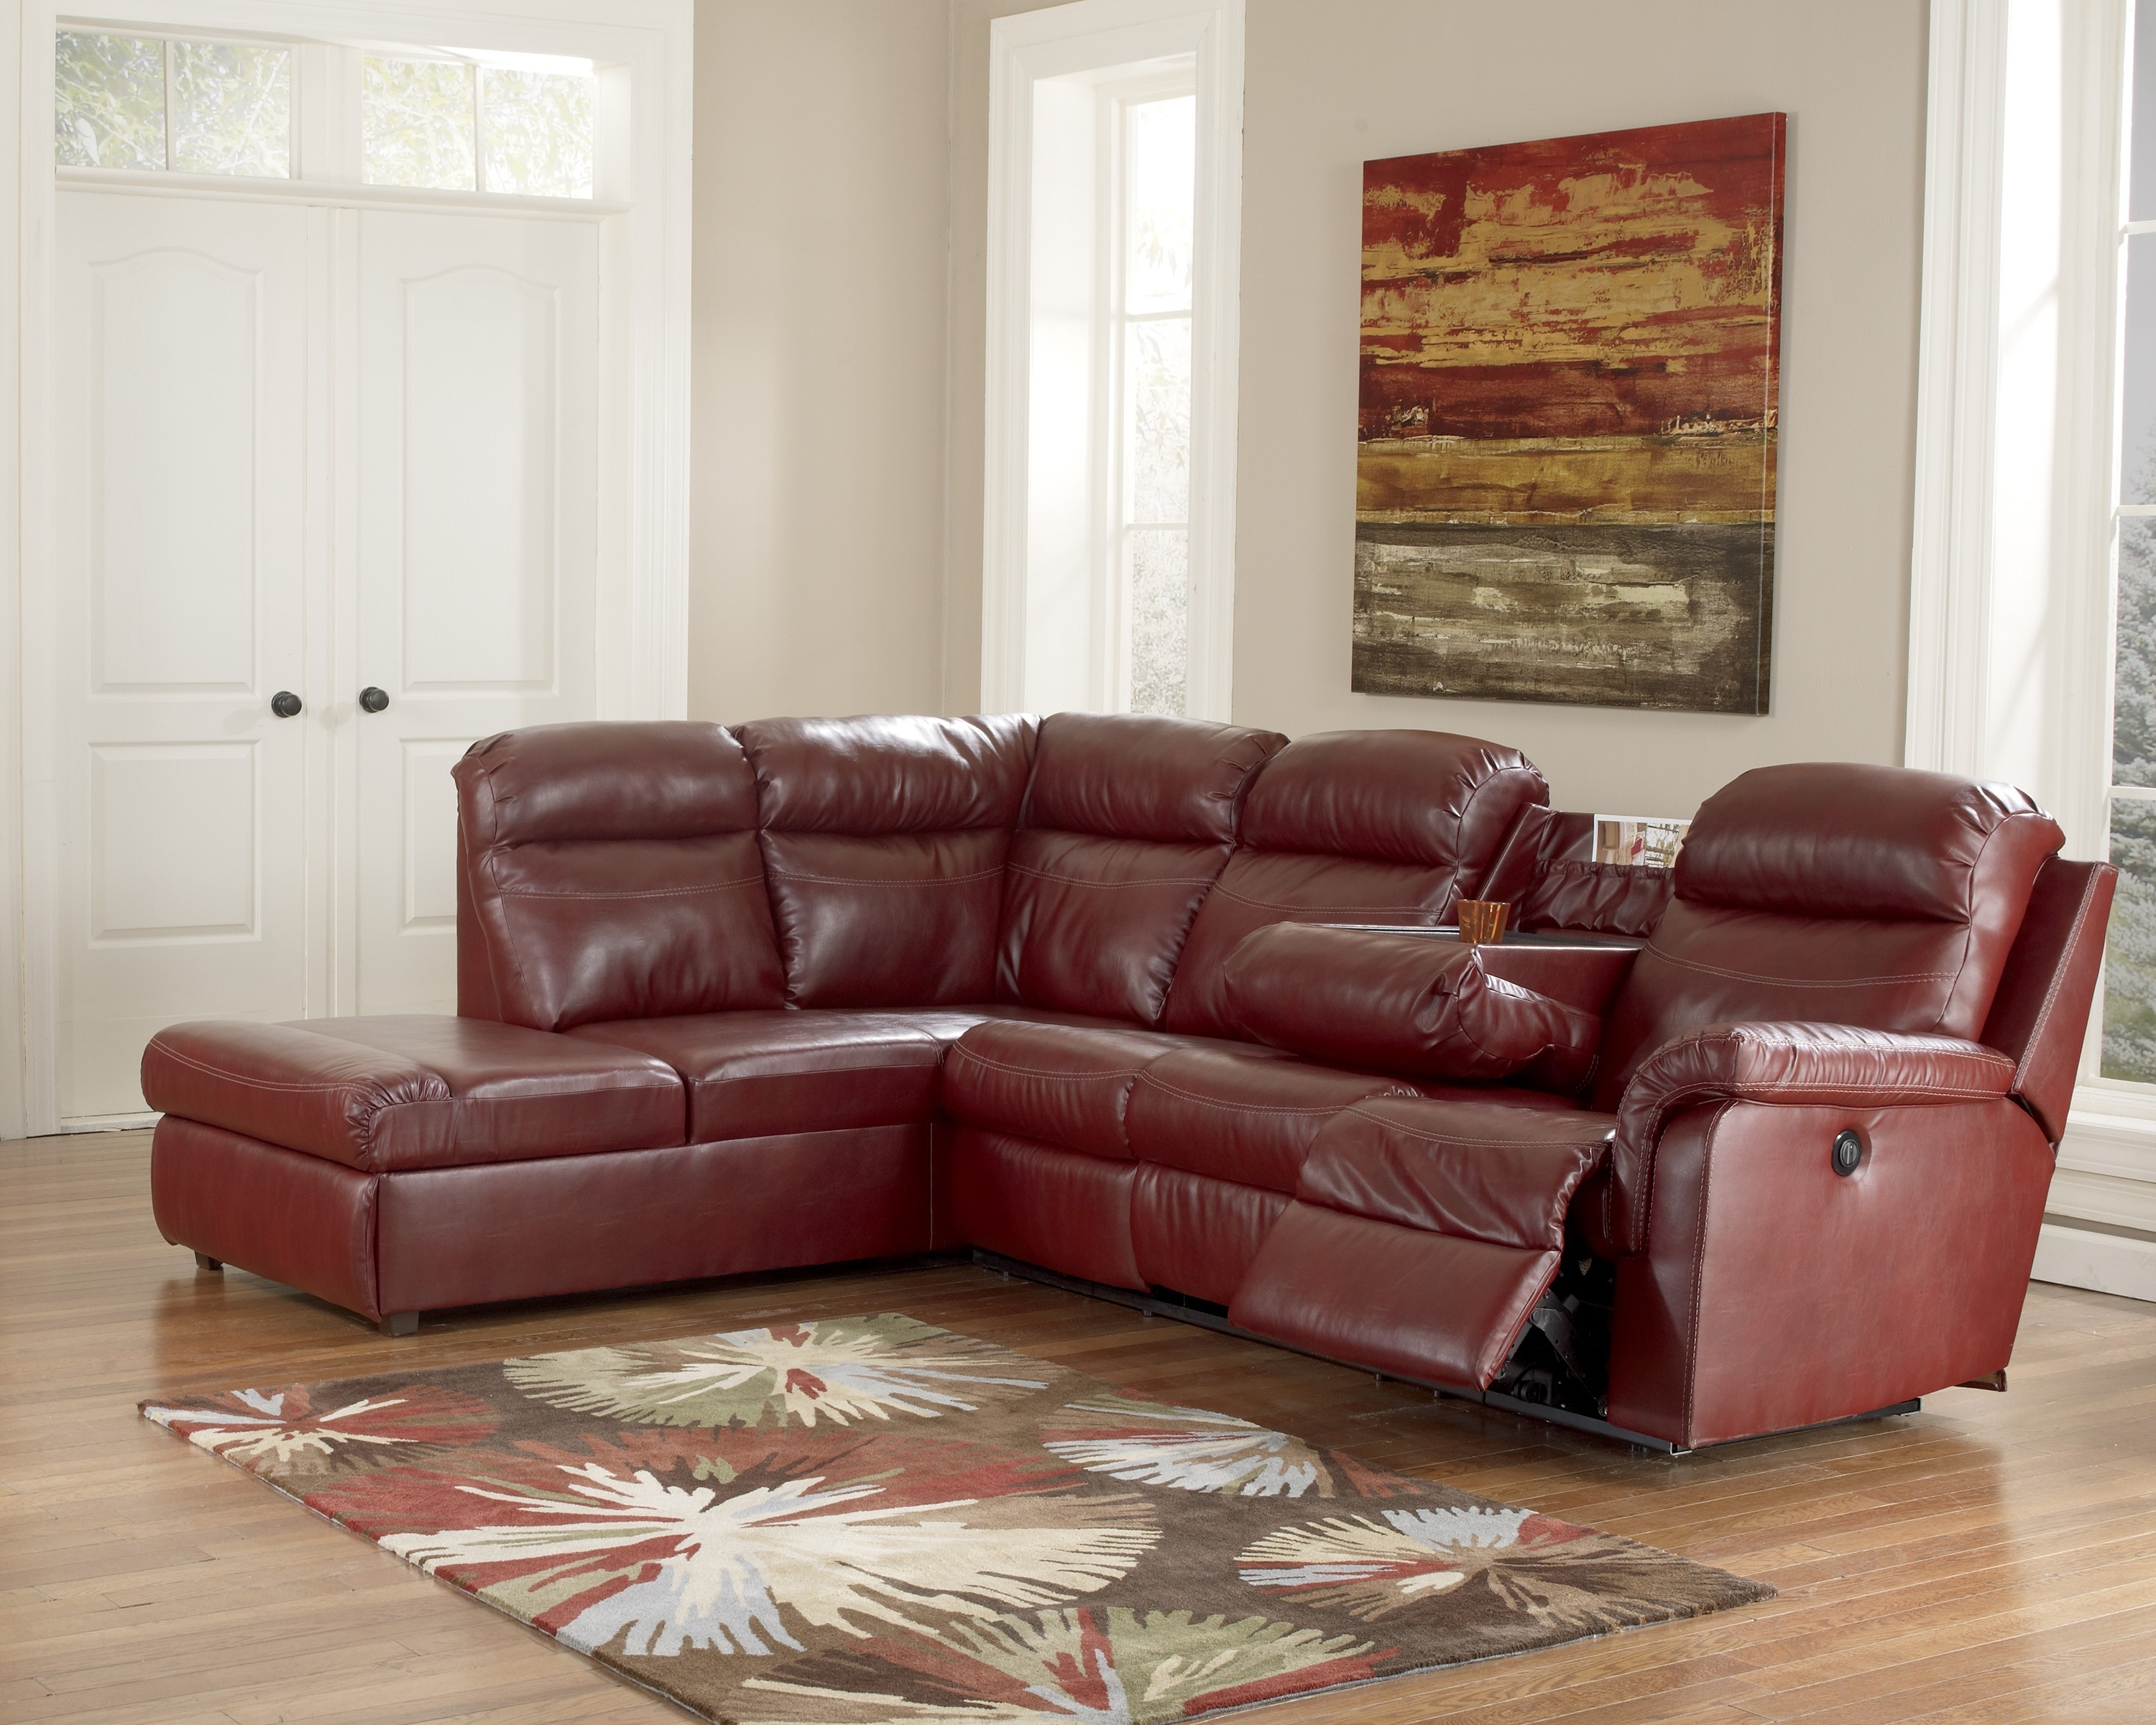 Beautiful Leather Sectional With Chaise And Recliner Gallery Inside Well Liked Leather Sectionals With Chaise And Recliner (View 4 of 15)